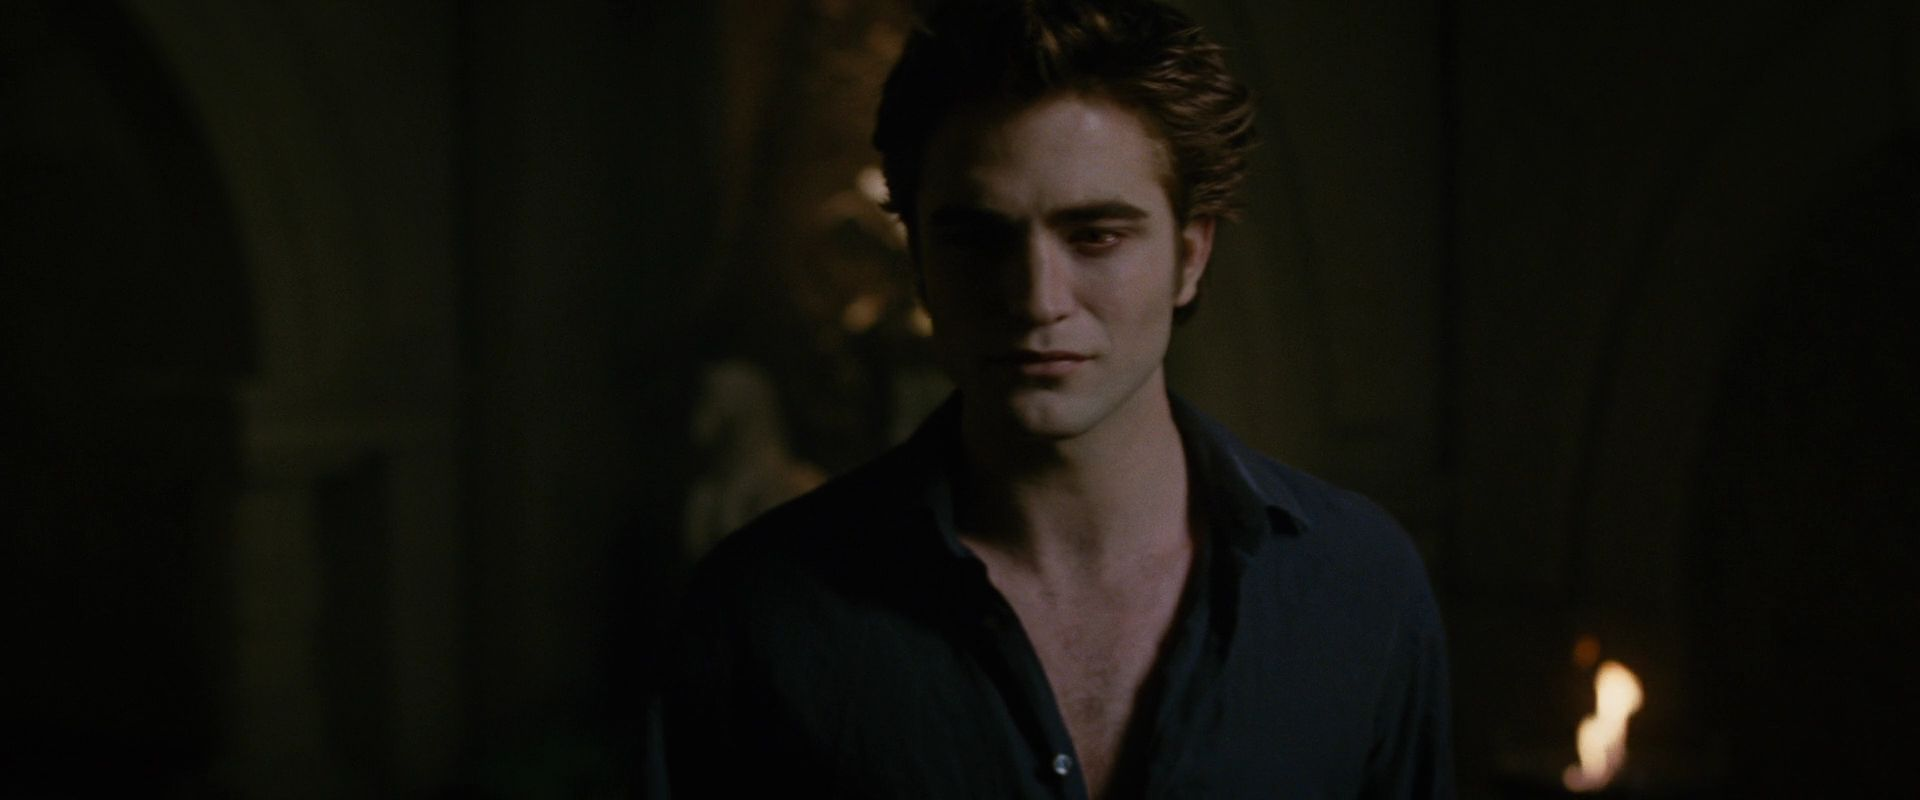 Edward Cullen - Edward Cullen Photo (18265636) - Fanpop